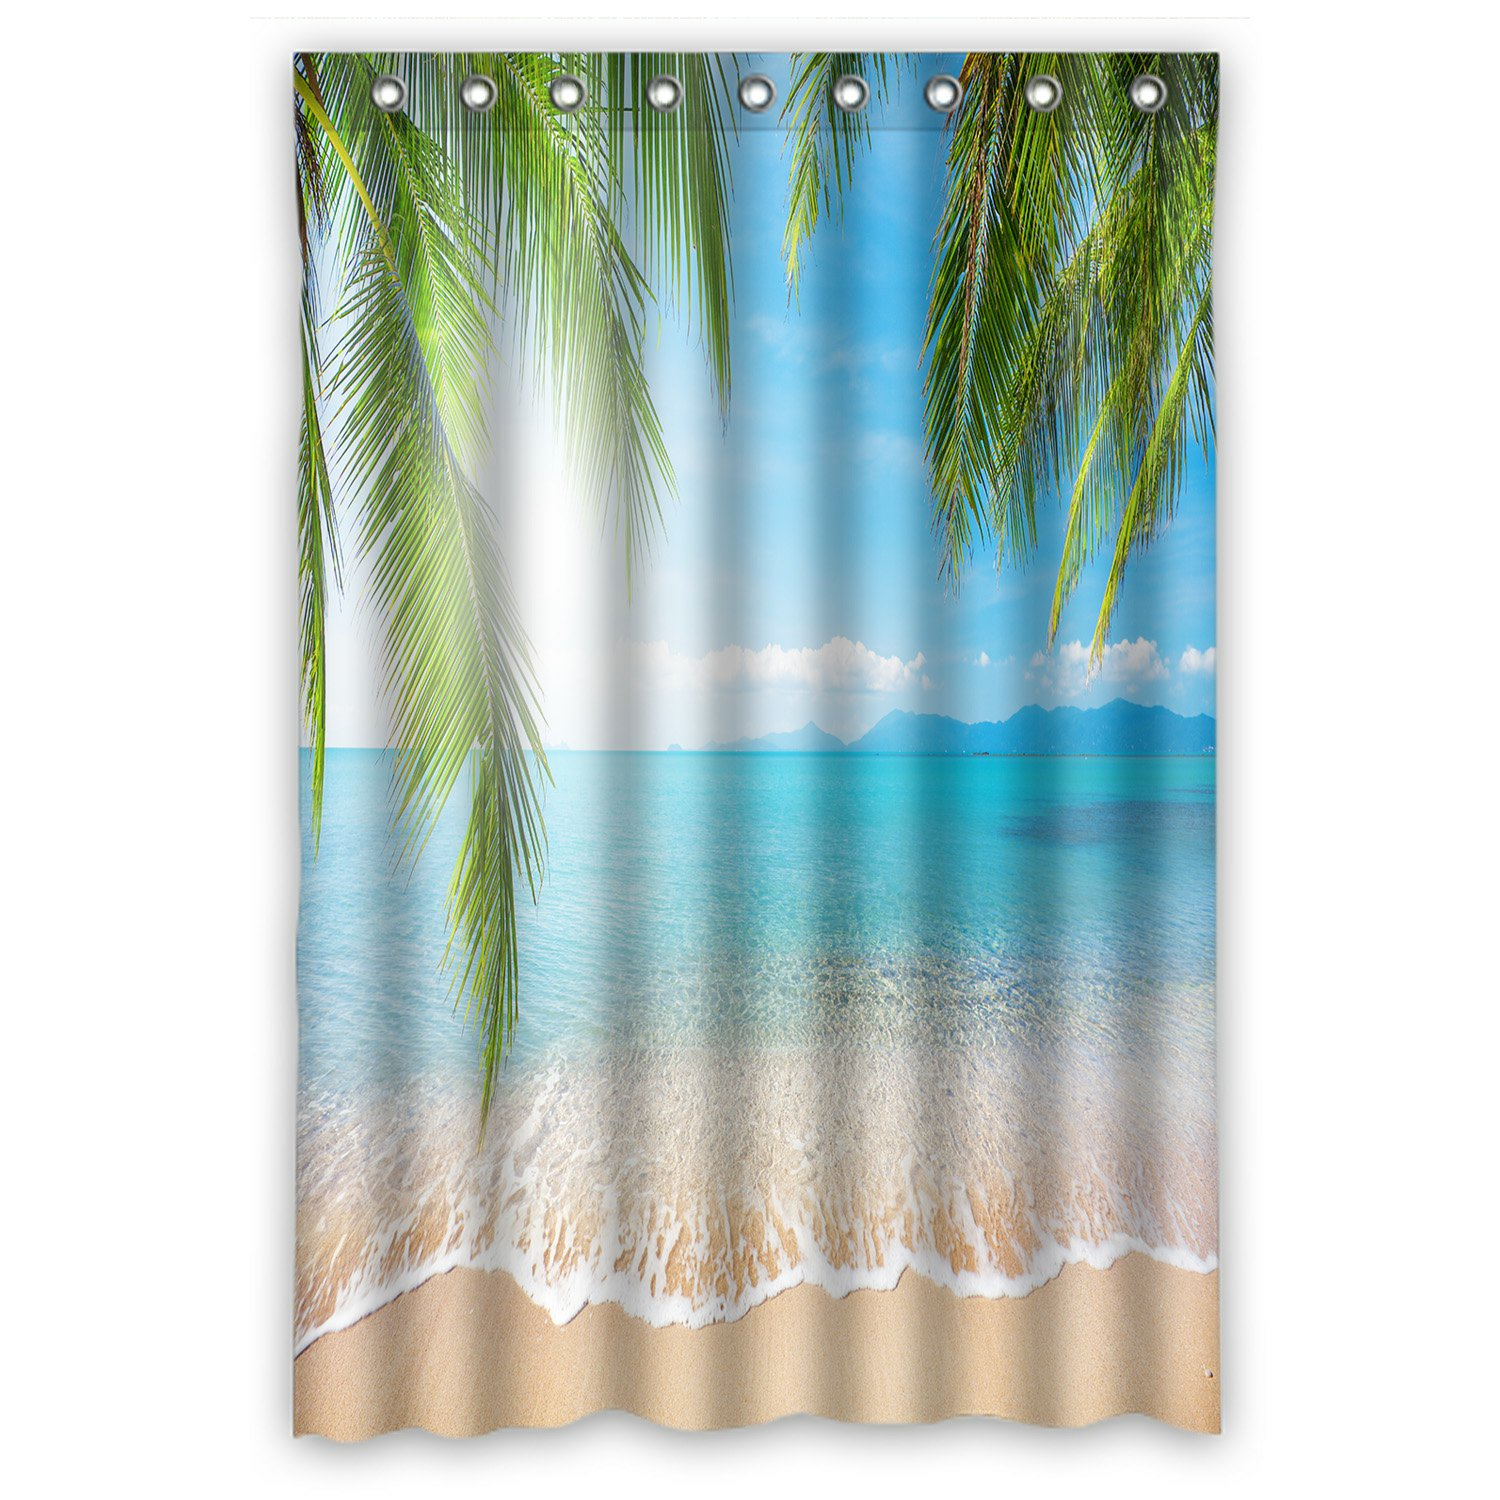 Phfzk Bule Sea Ocean Shower Curtain Tropical Beach Palm Tree Polyester Fabric Bathroom Shower Curtain 36x72 Inches